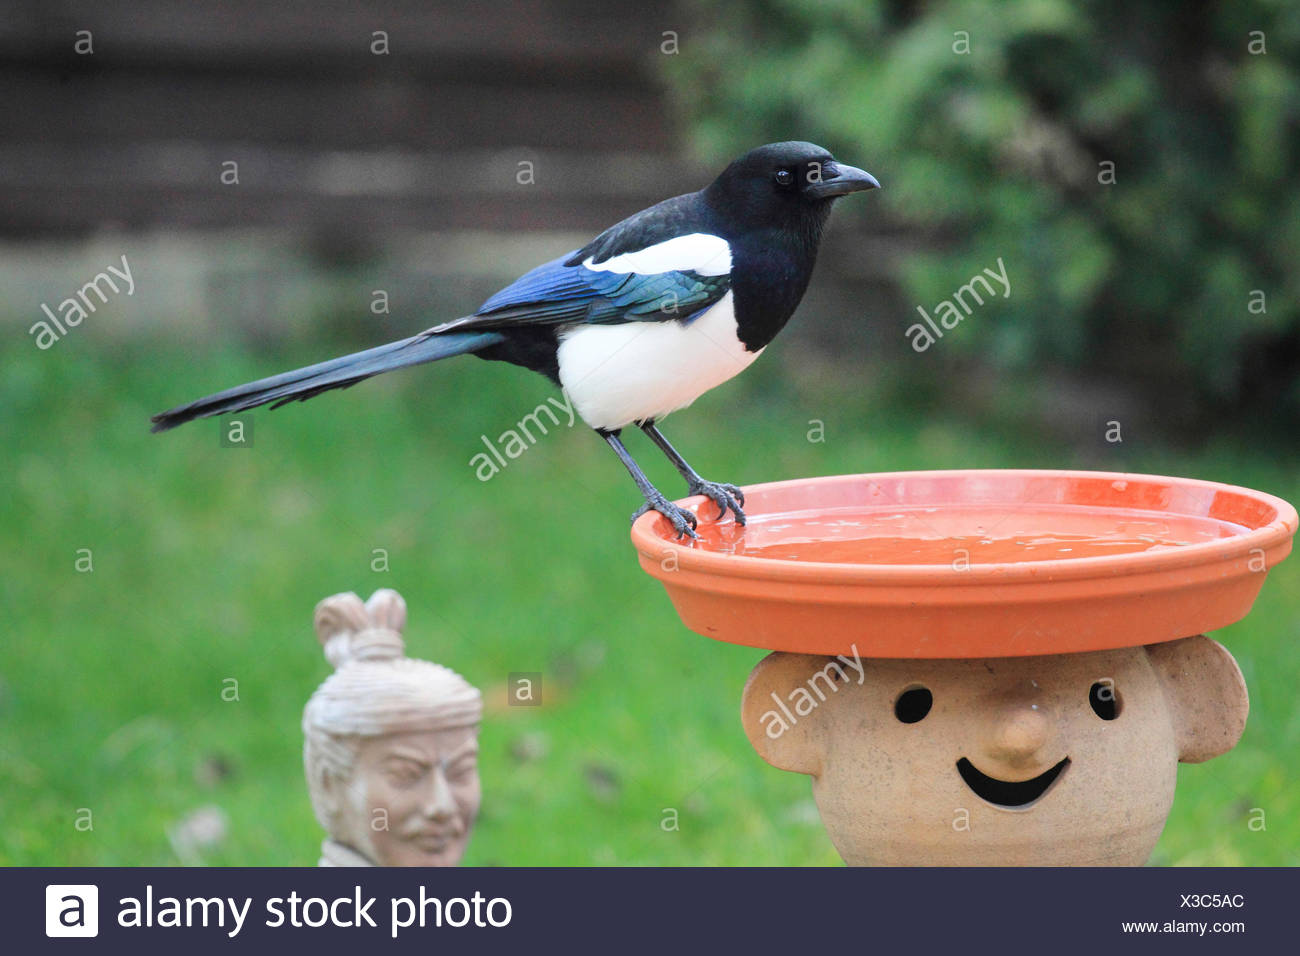 garden bird stockfotos garden bird bilder alamy. Black Bedroom Furniture Sets. Home Design Ideas